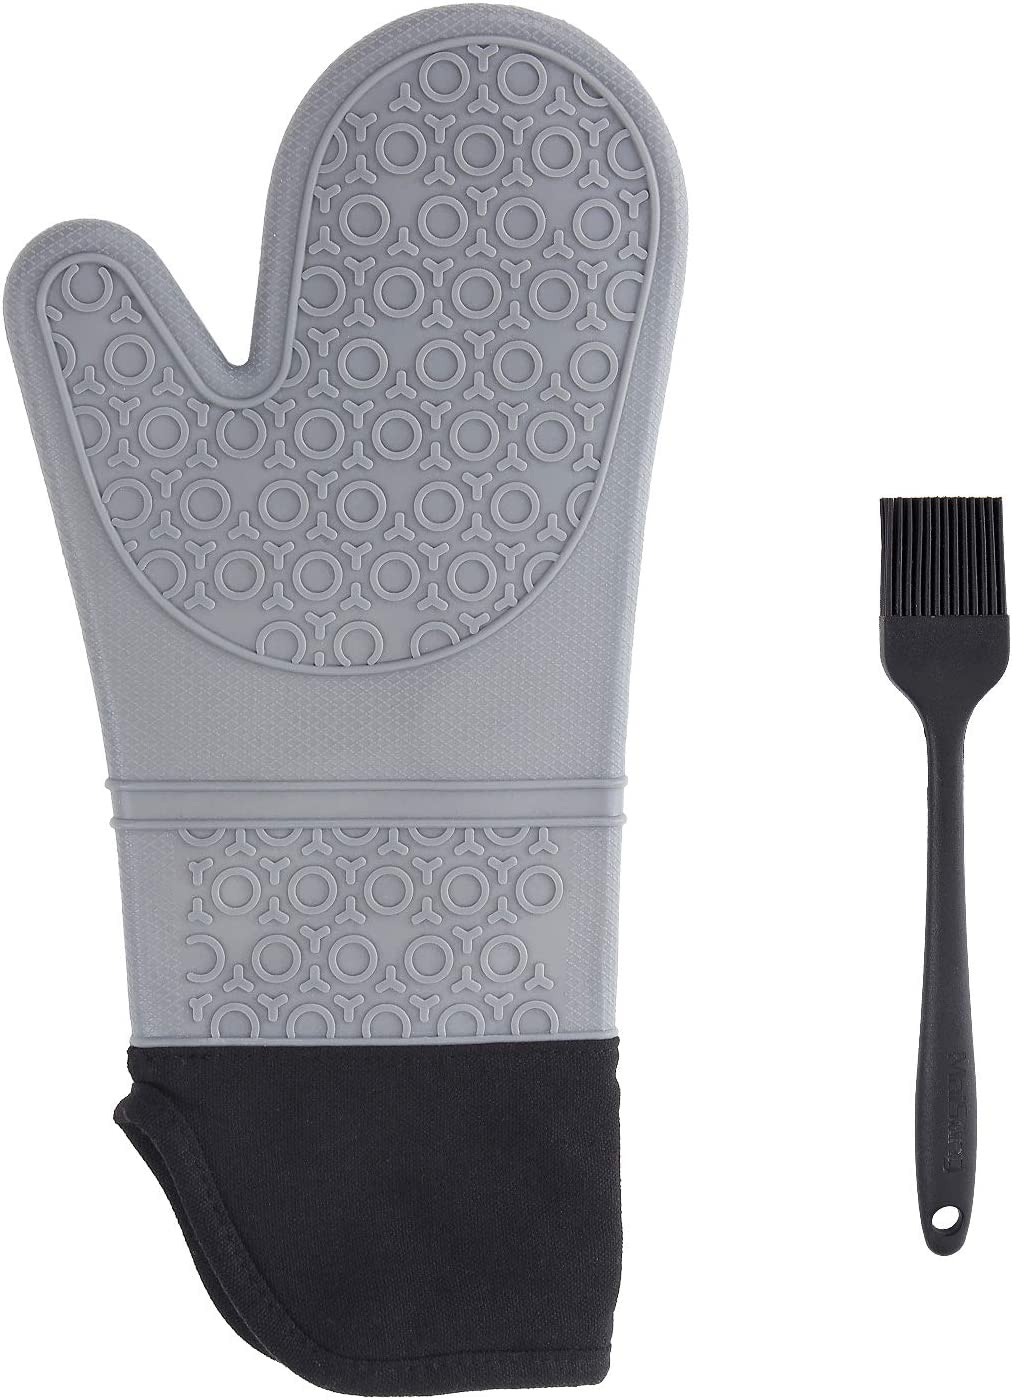 MaiSung Oven Mitt/Food Safe Oven Mitt/Silicone High Temperature Resistance/Suitable for a Variety of High Temperature Kitchen Appliances/Take Things Flexibly/Non-Slip/Equipped with an Oil Brush-Grey